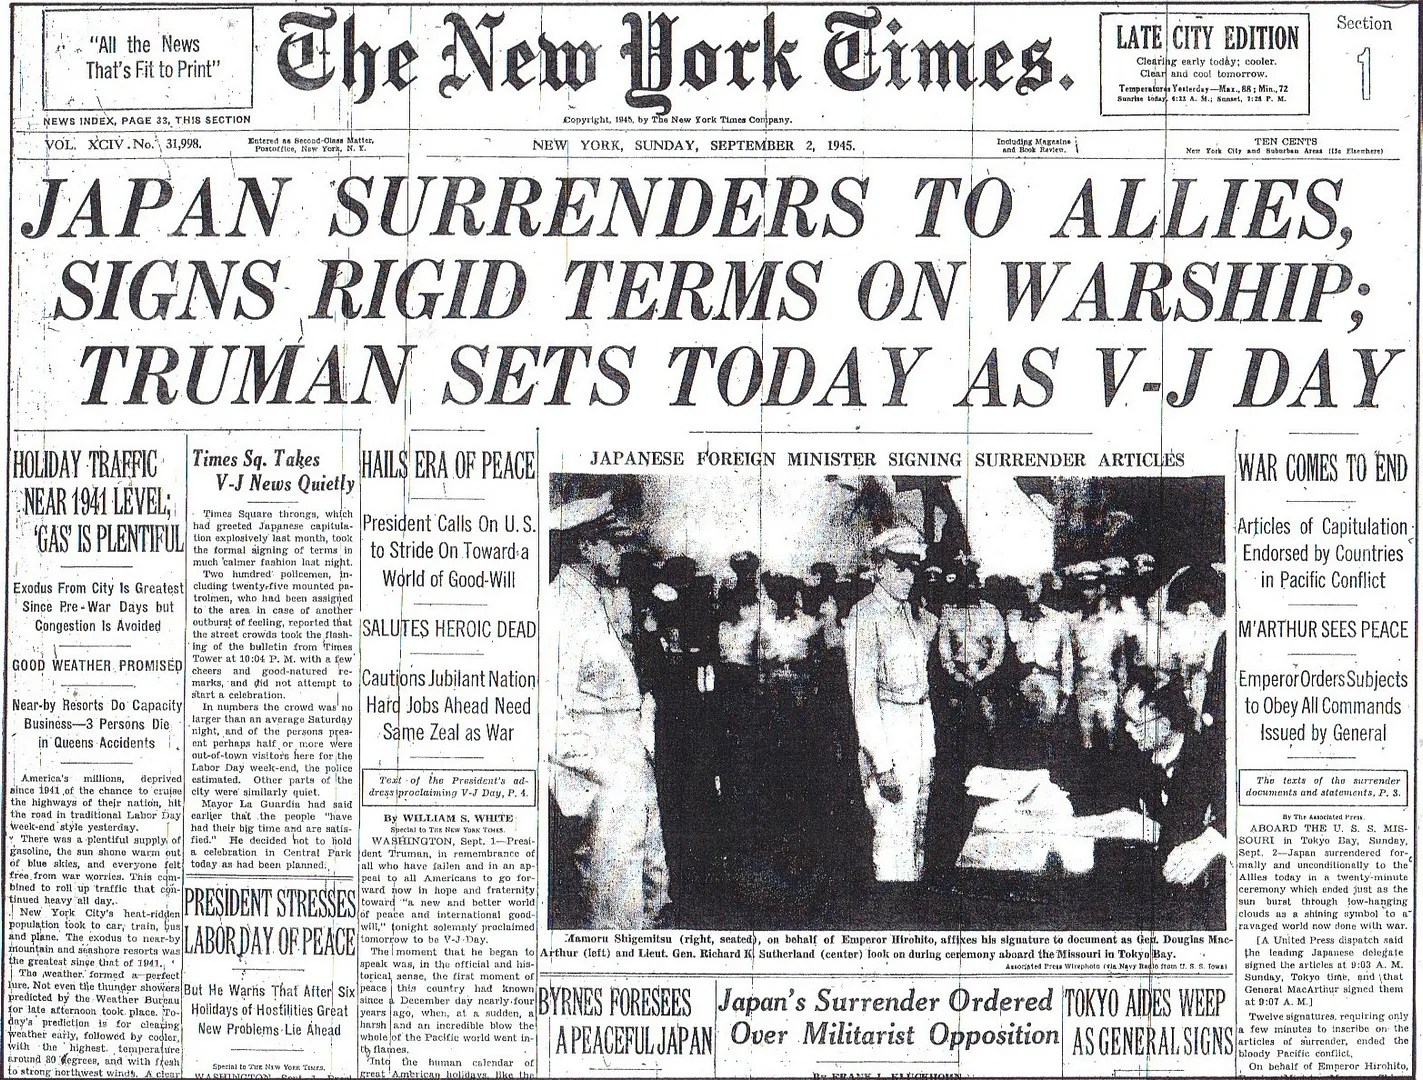 Japan Surrenders To Allies Signs Rigid Terms On Warship Truman Sets Today As V J Day 9 2 45